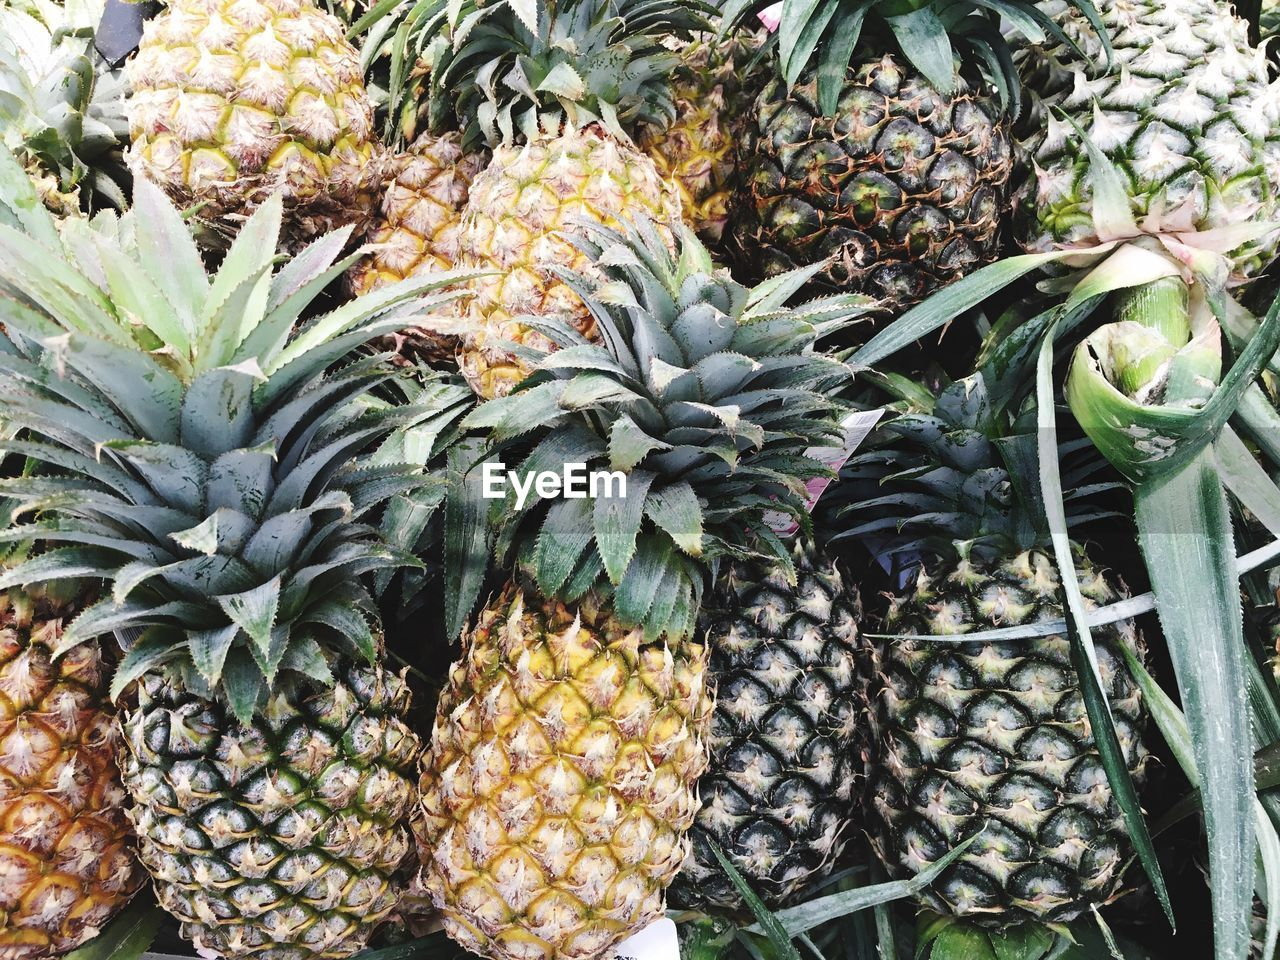 pineapple, food and drink, market, fruit, healthy eating, food, freshness, for sale, no people, variation, retail, outdoors, day, abundance, choice, nature, beauty in nature, close-up